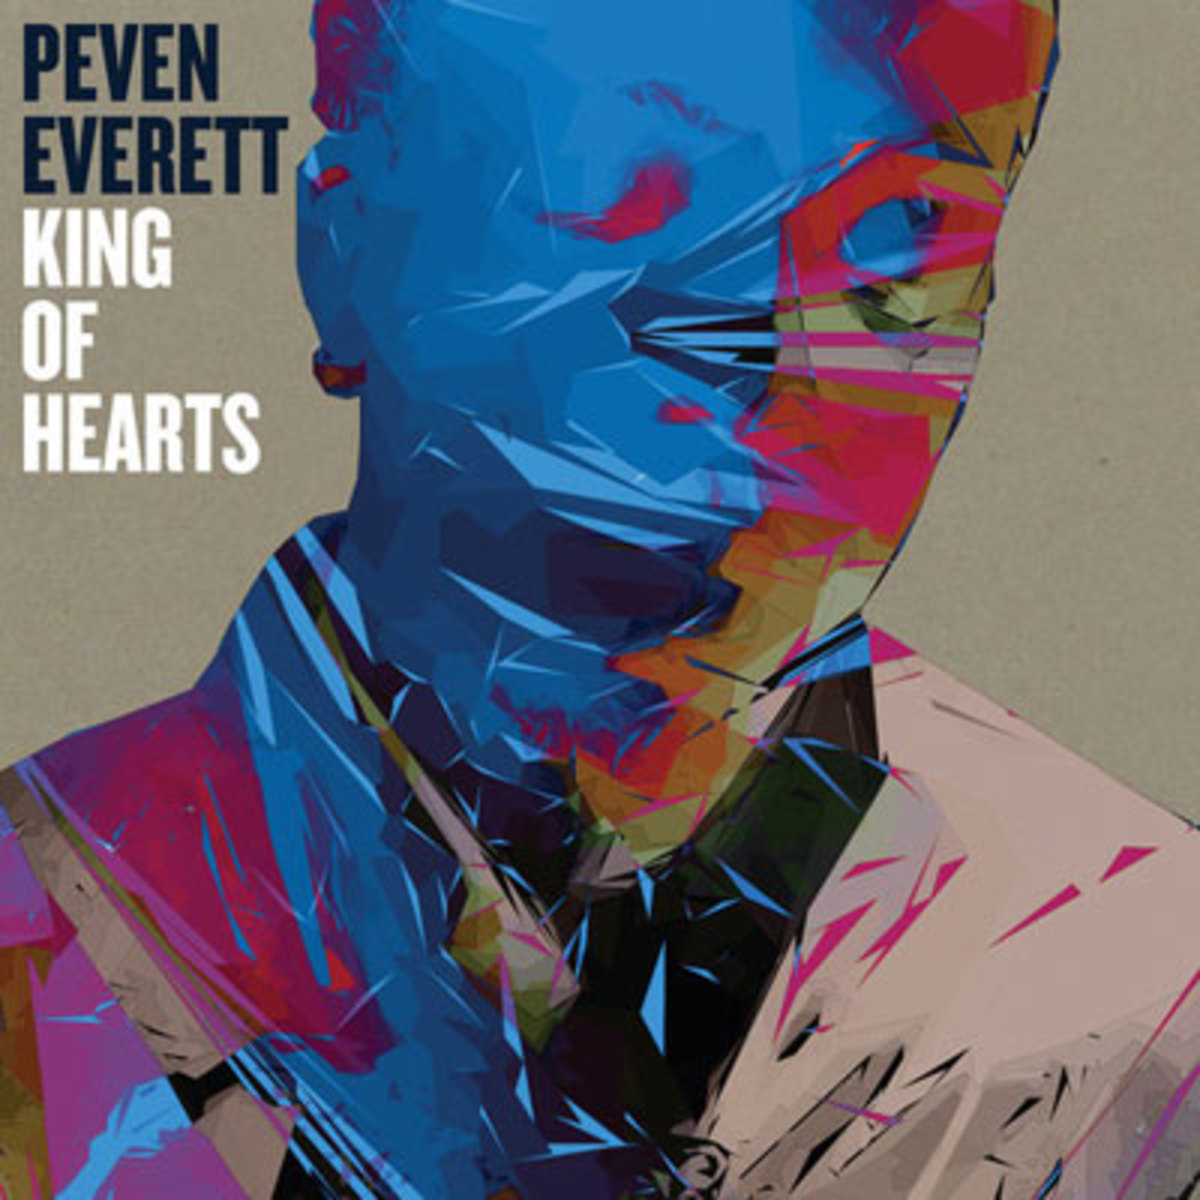 pevenevertt-kingsofhearts.jpg